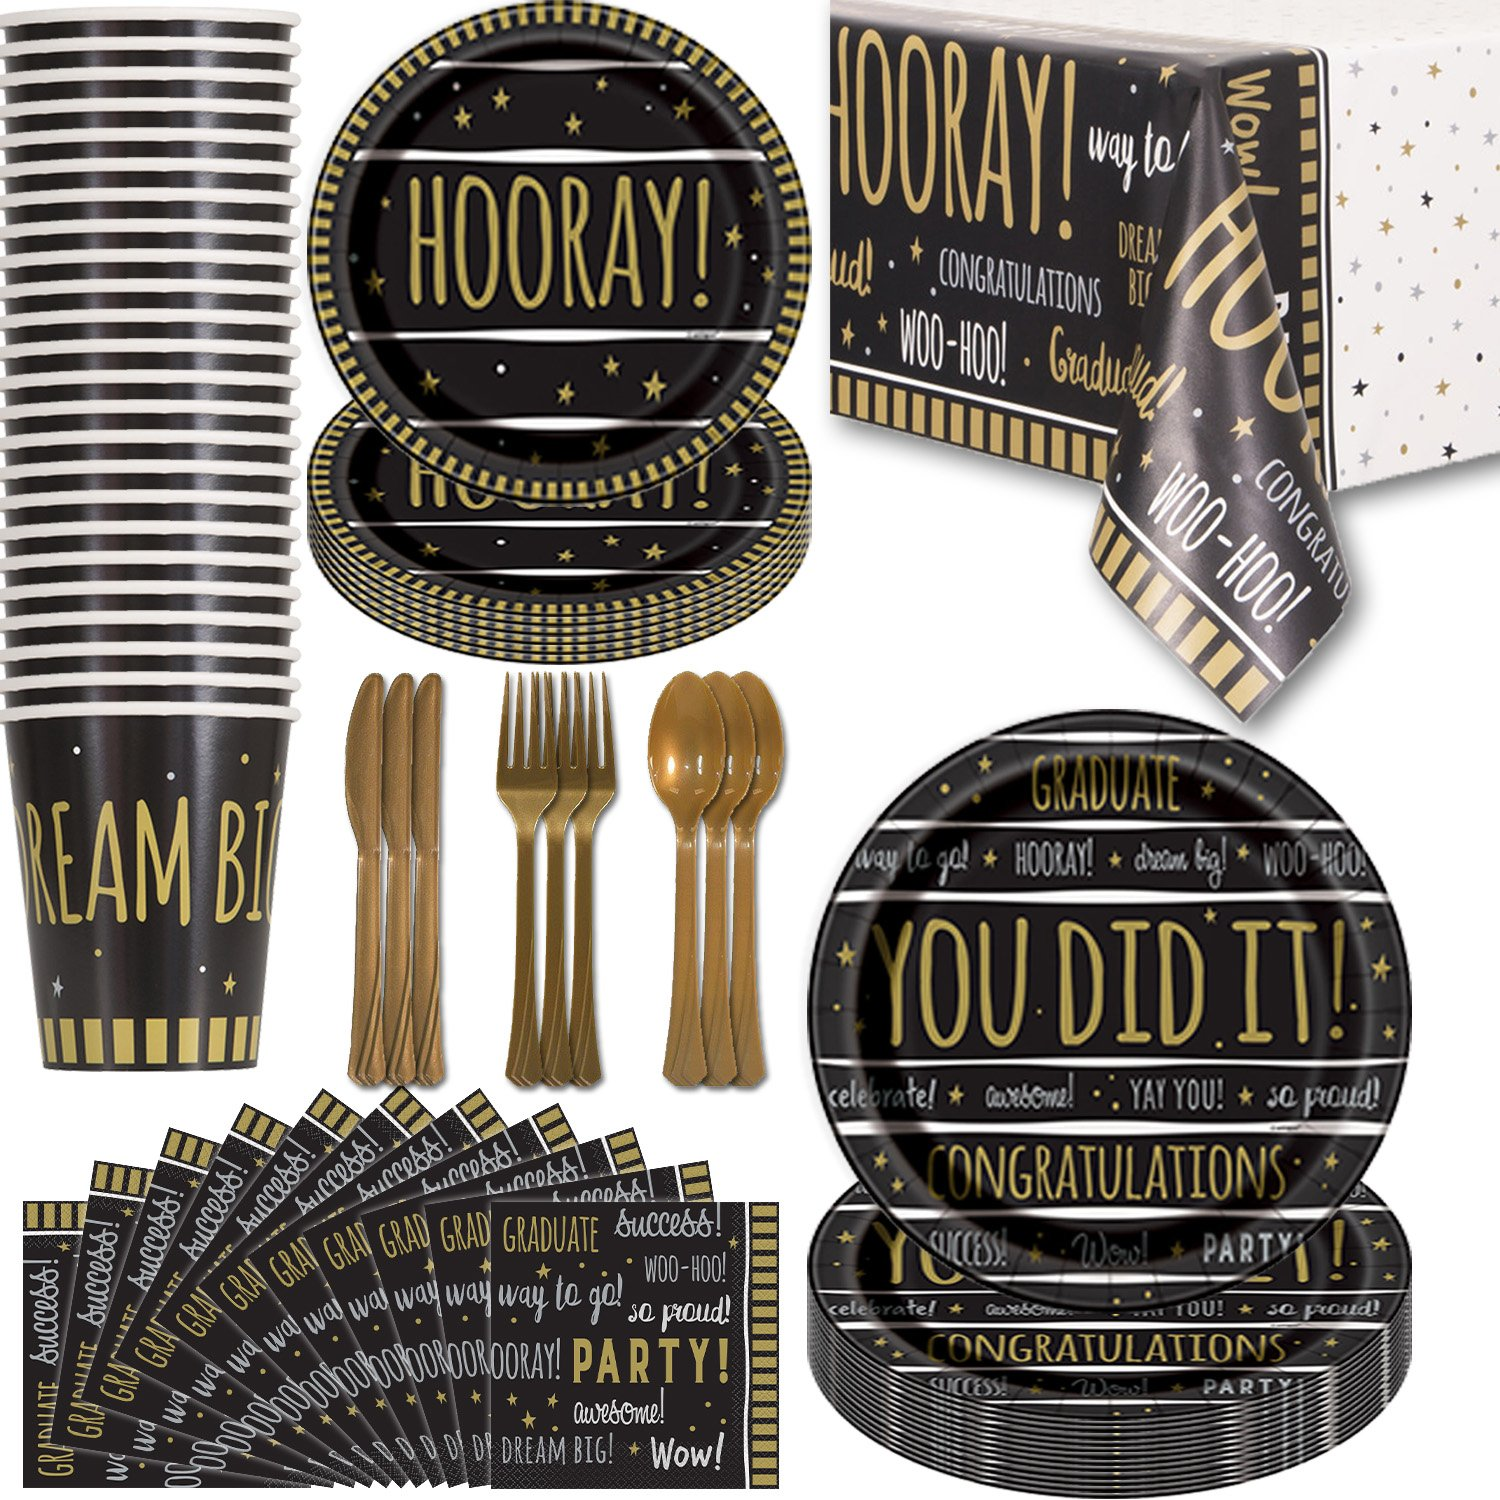 Graduation Party Supplies - 24 Guest - Dinner Plates, Dessert Plates, Napkins, Cups, Tablecloths, Cutlery. Gold and Black Disposable Tableware Set